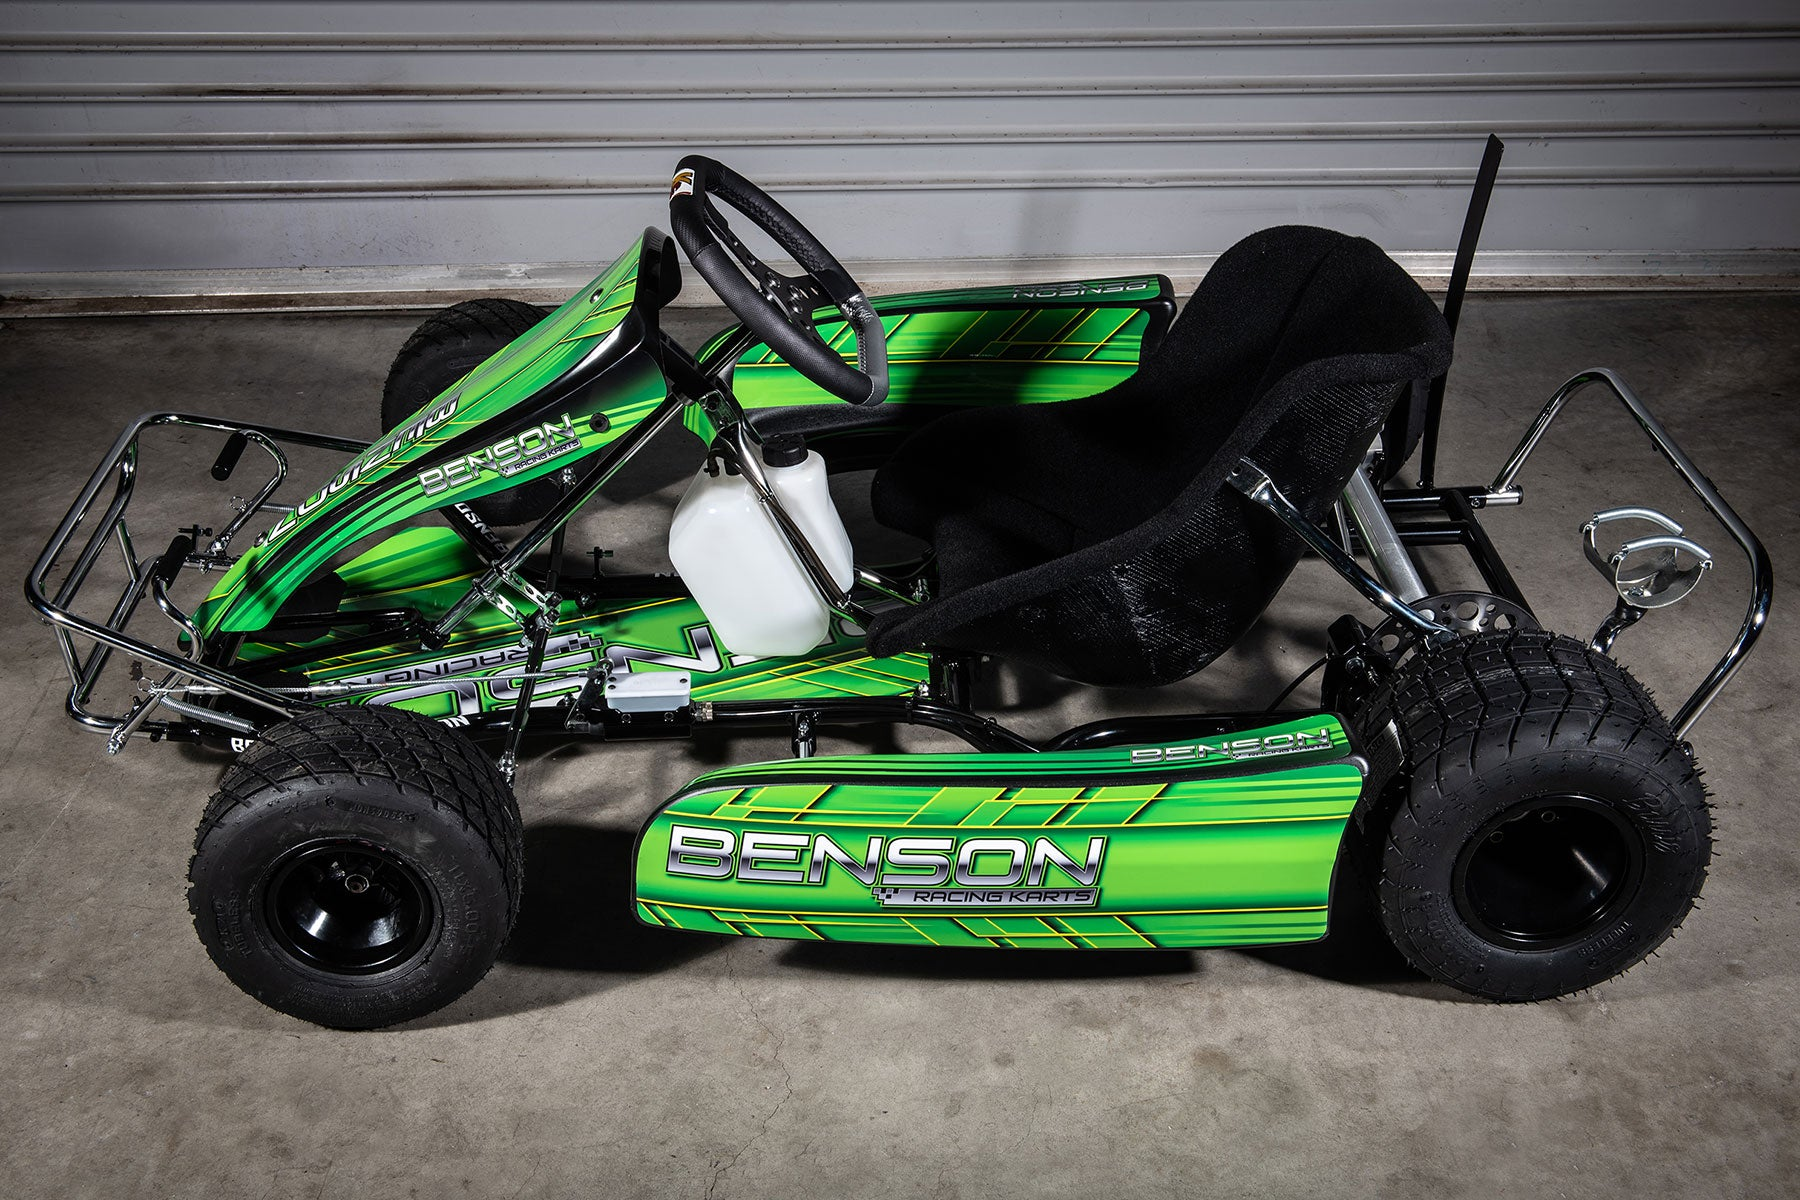 Benson Racing Kart Side View